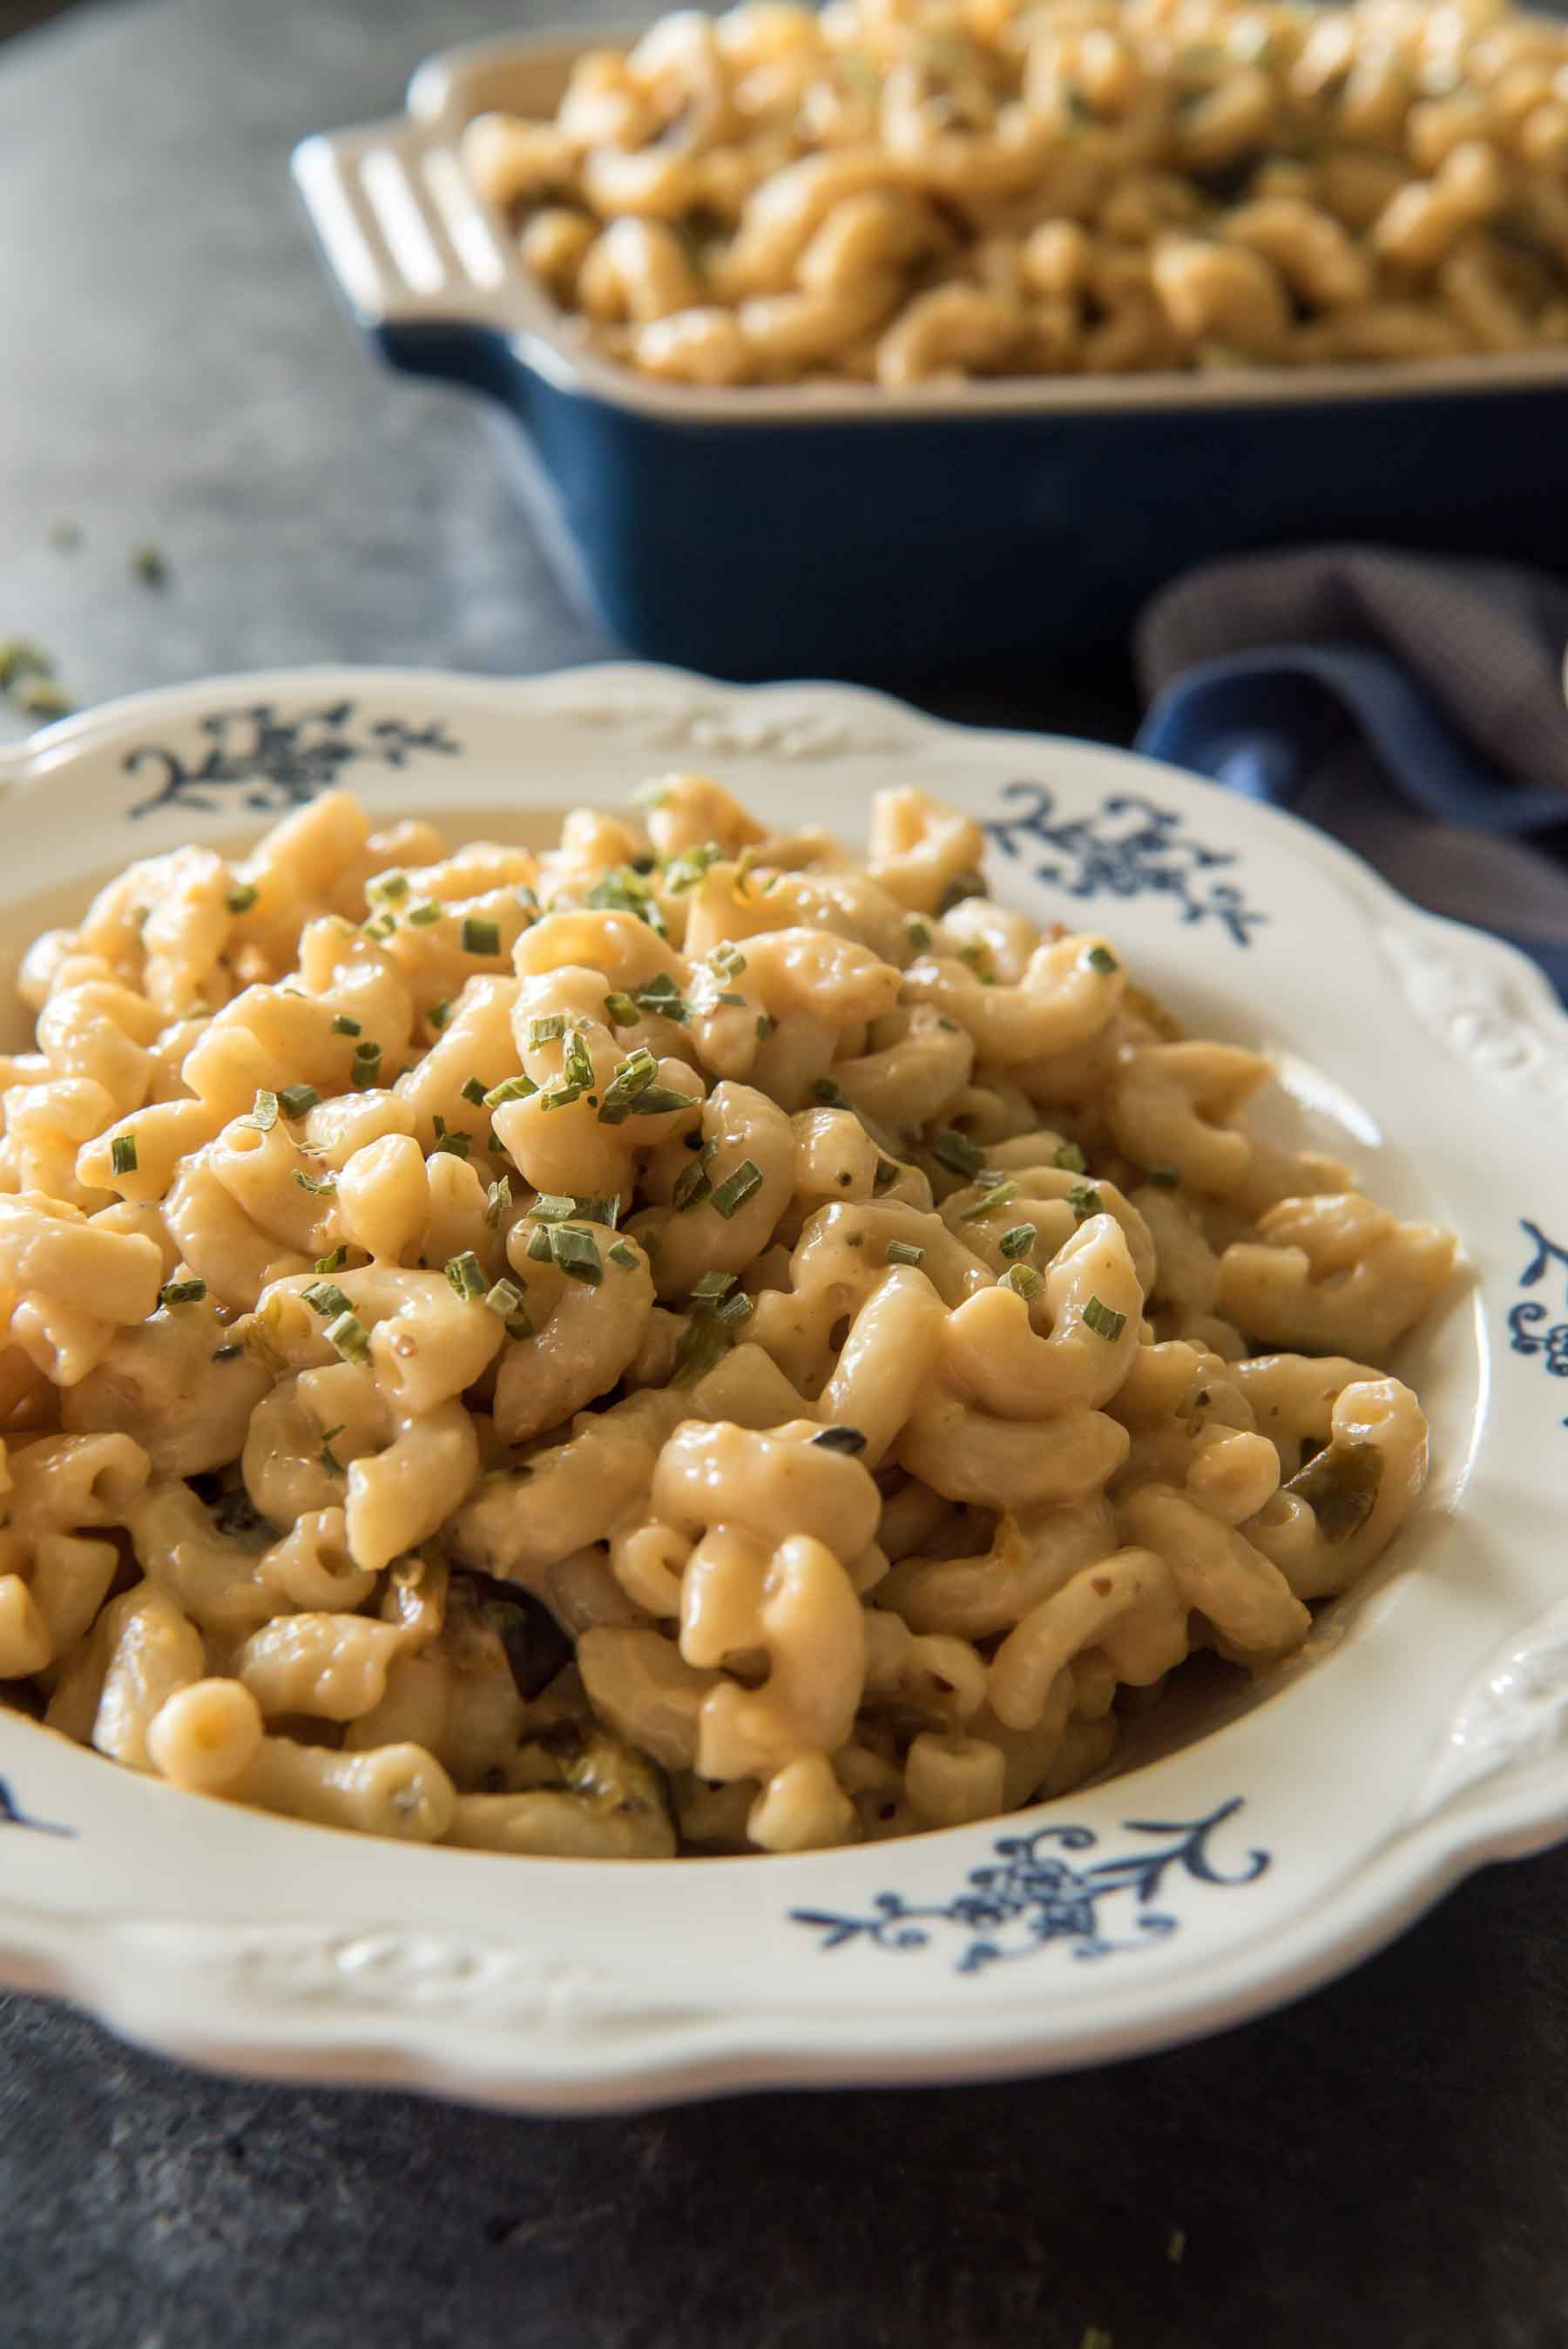 Fresh jalapenos heat up this Instant Pot Mac and Cheese with Roasted Poblanos - but delicious, creamy layers of cheese cool it all down, making this side dish perfect for all ages & palates!